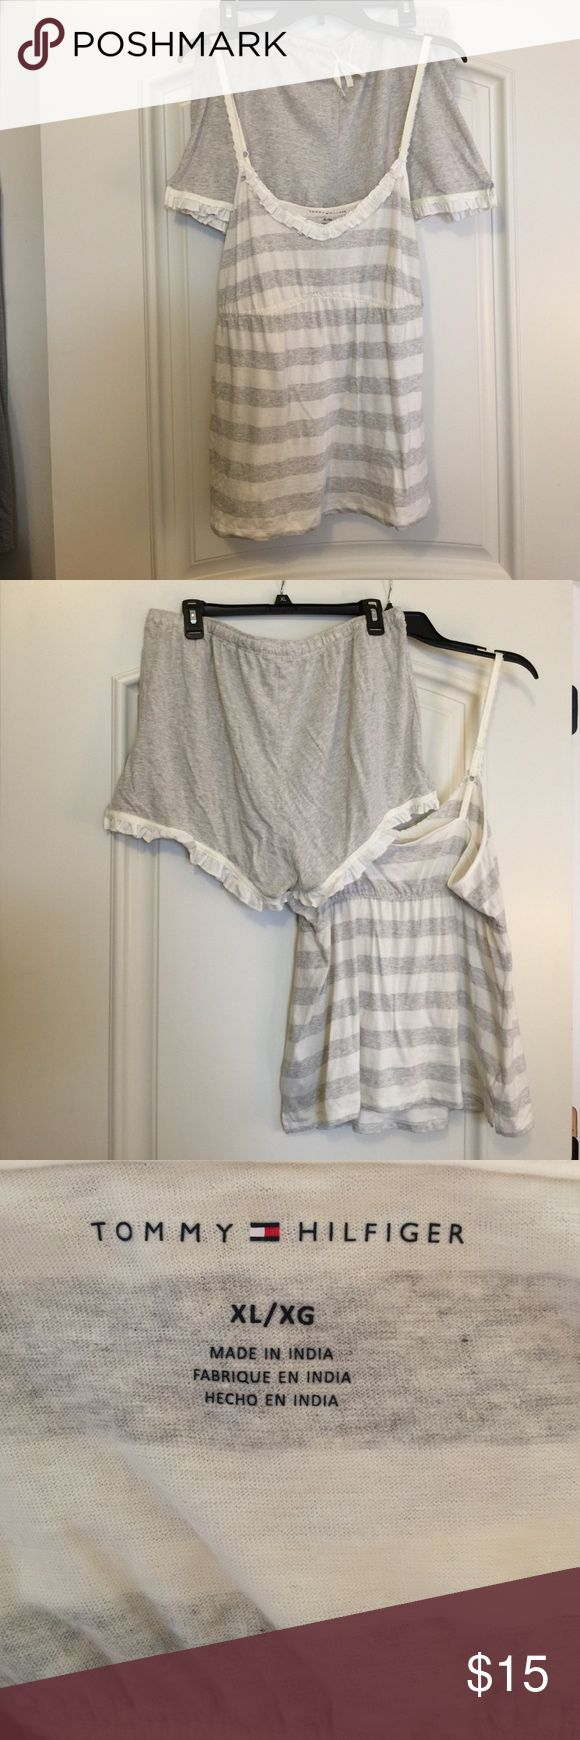 Tommy Hilfiger's women's Cami and boxers Comfy Cami and boxer sleep set Tommy Hilfiger Intimates & Sleepwear Pajamas